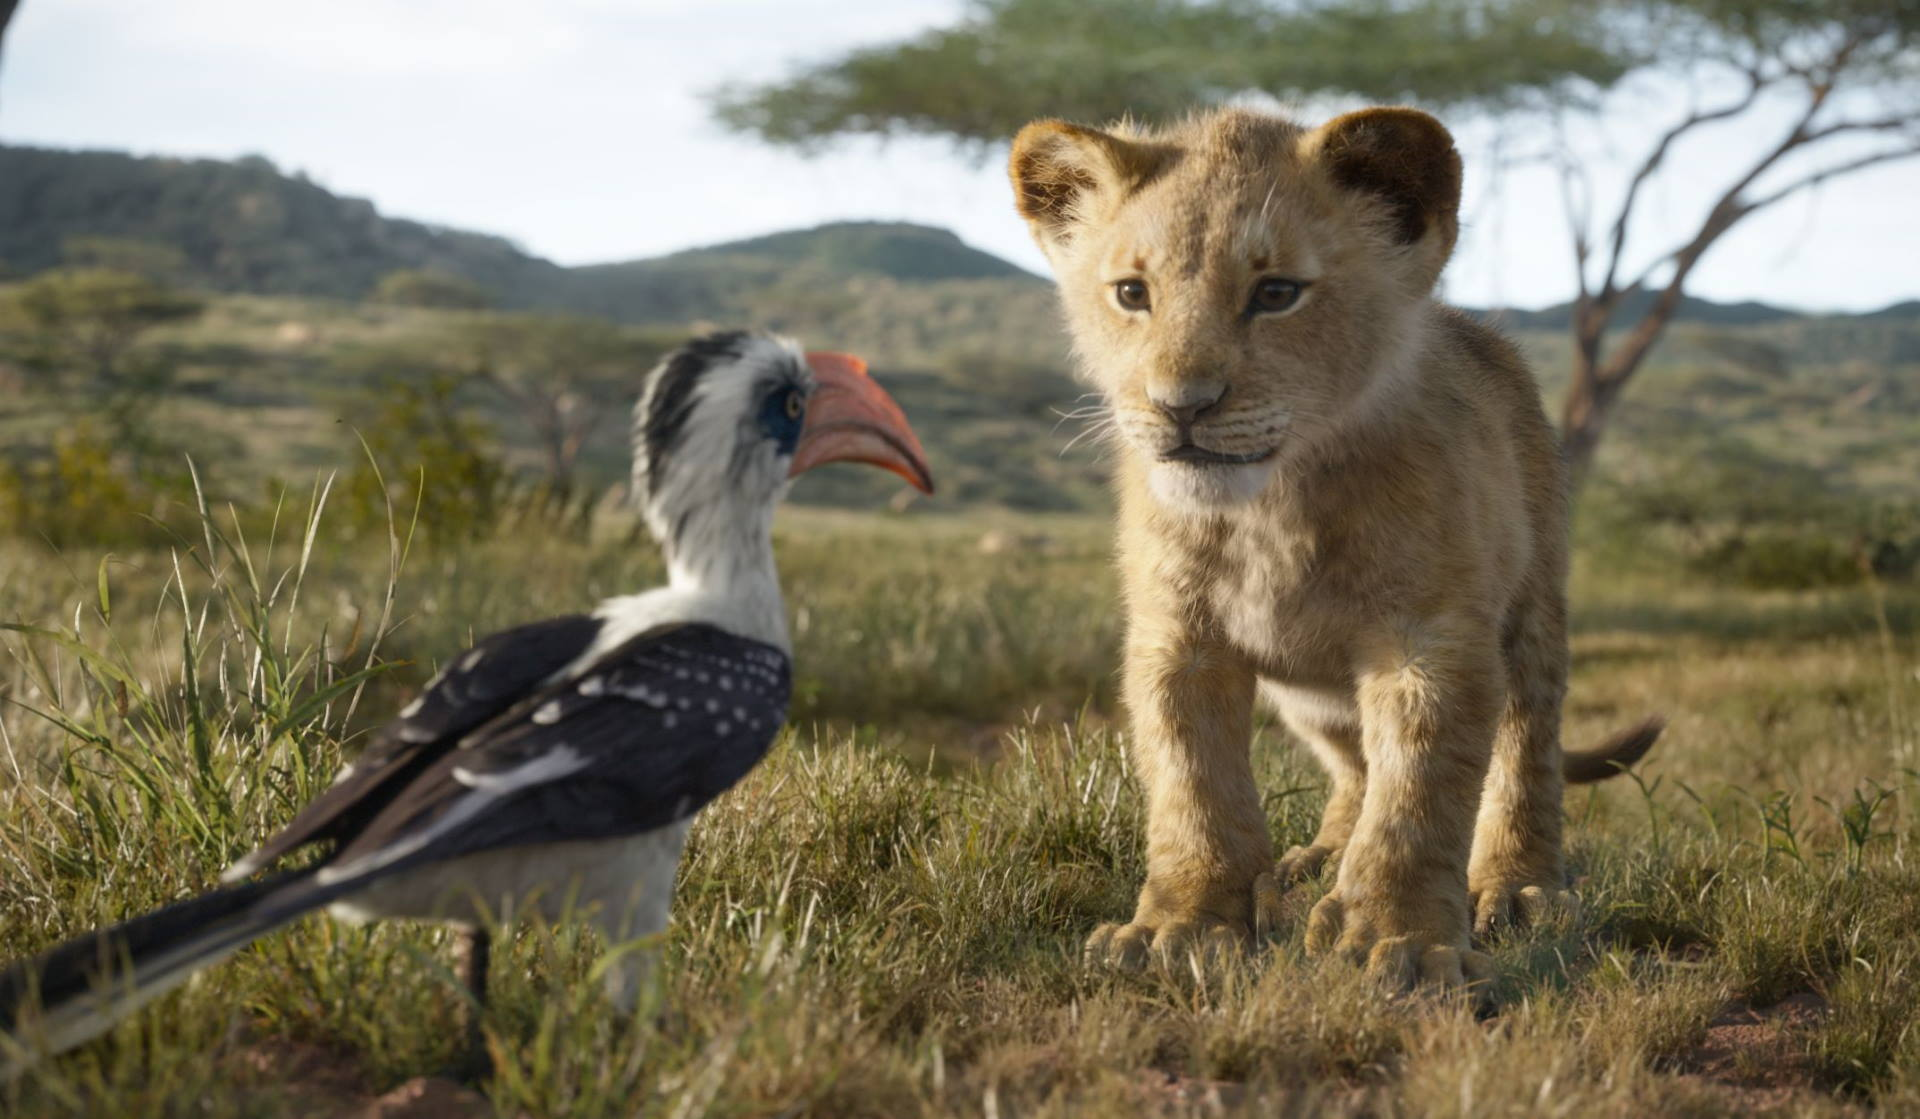 New Lion King Images – MPC Film